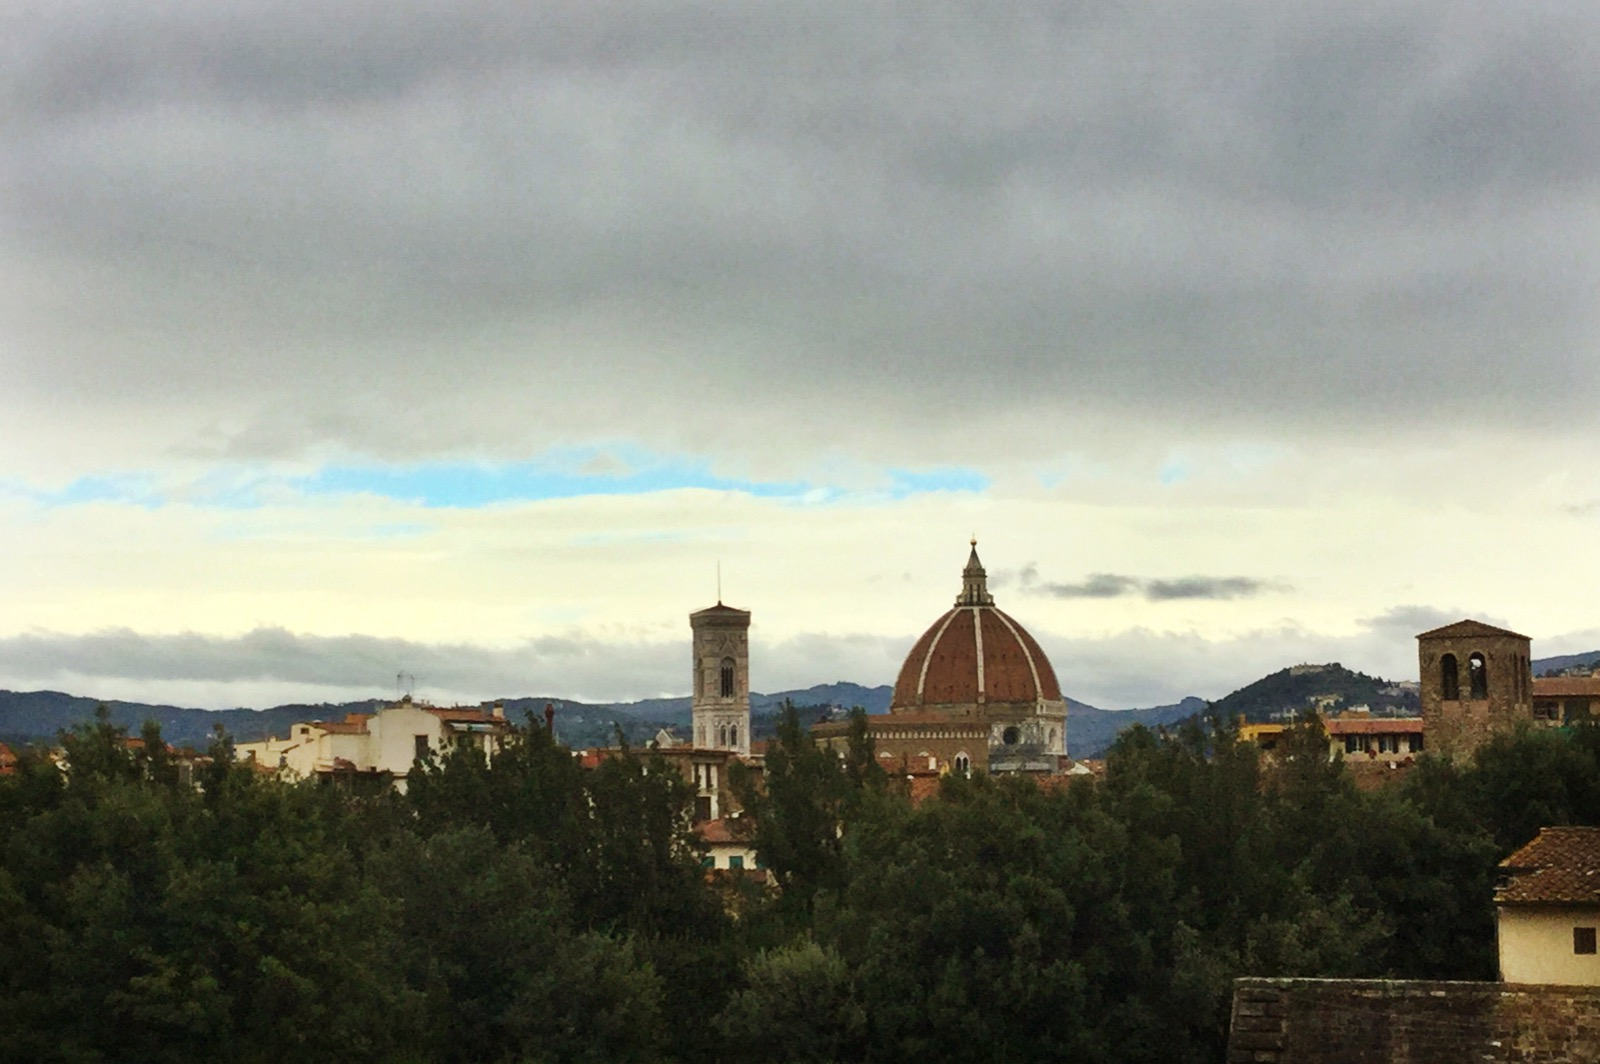 View of the Duomo from the Boboli Gardens